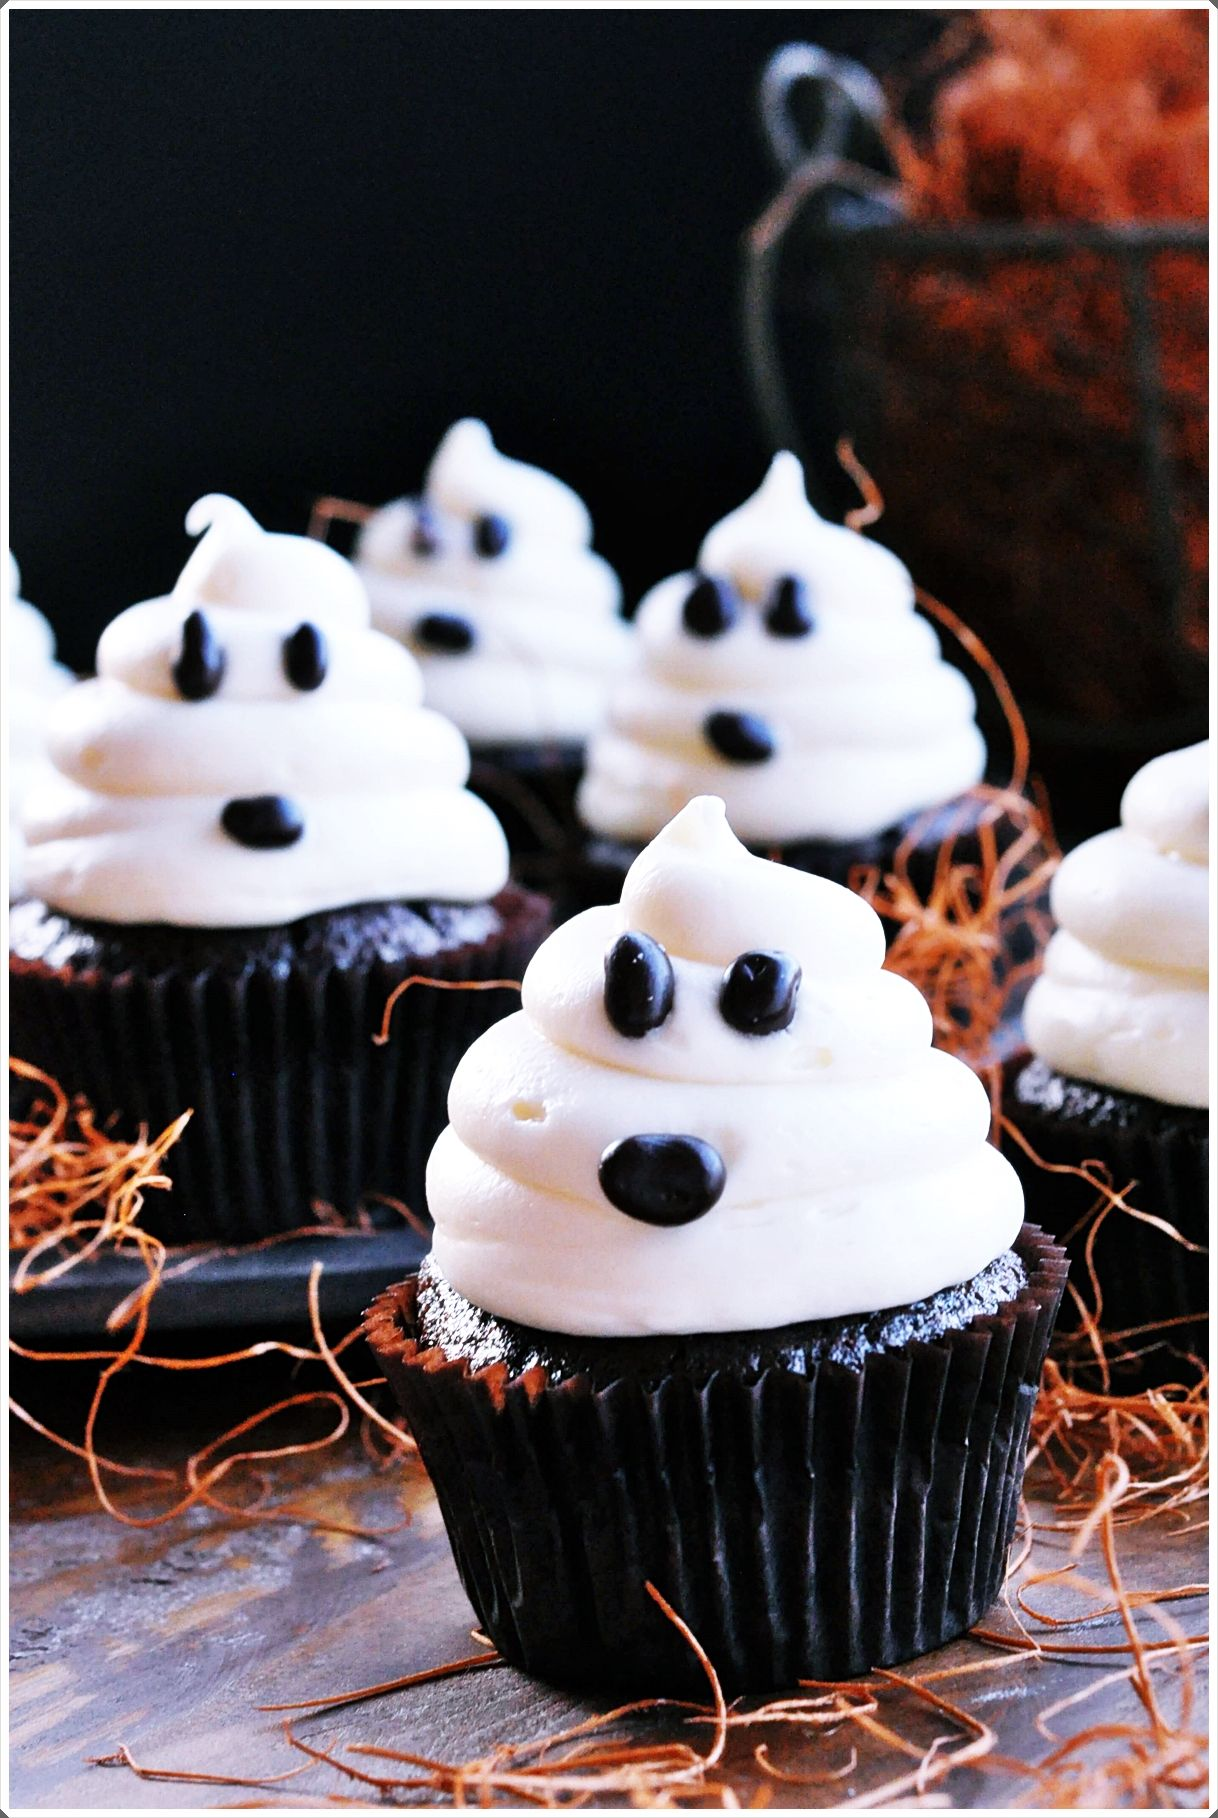 Easy Halloween Decorations For Cupcakes Trends 2020 Such